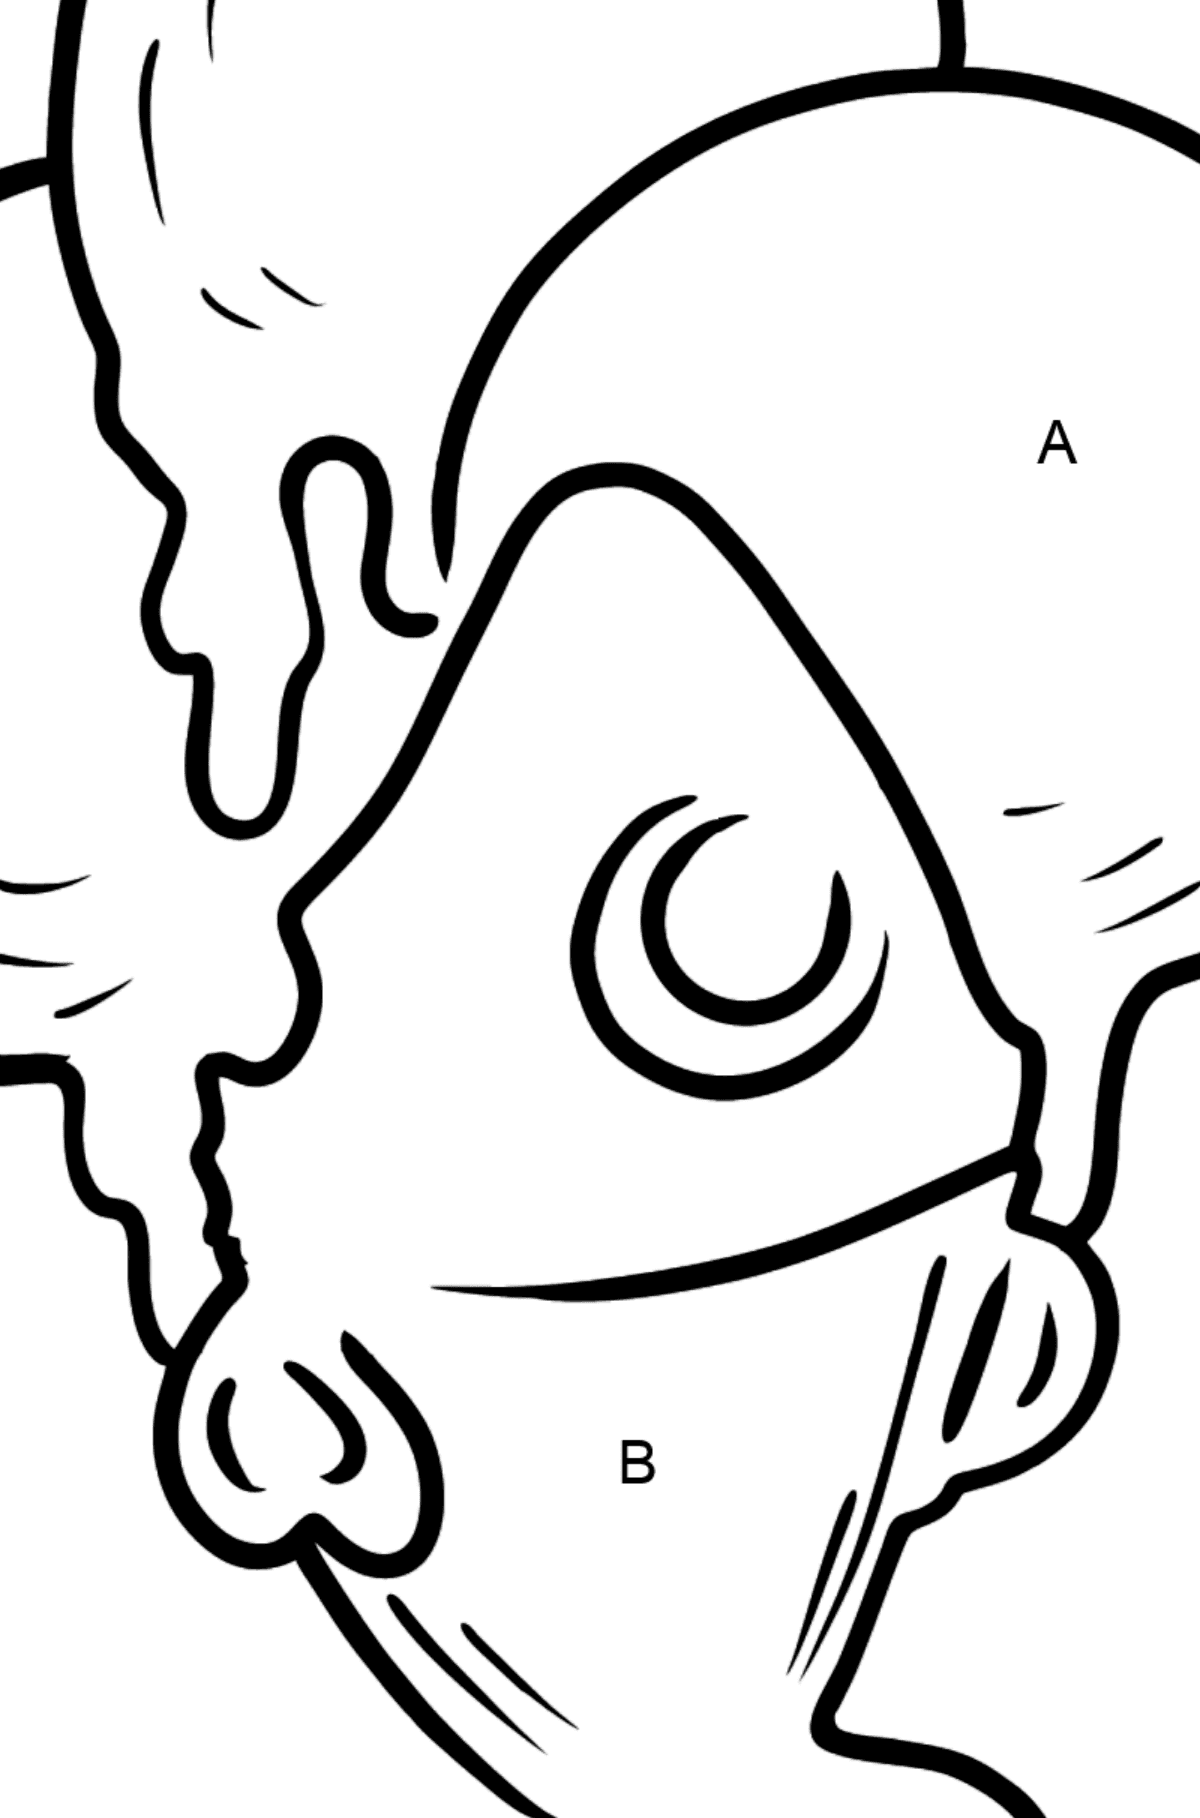 Bubble Gum Ice Cream coloring page - Coloring by Letters for Kids